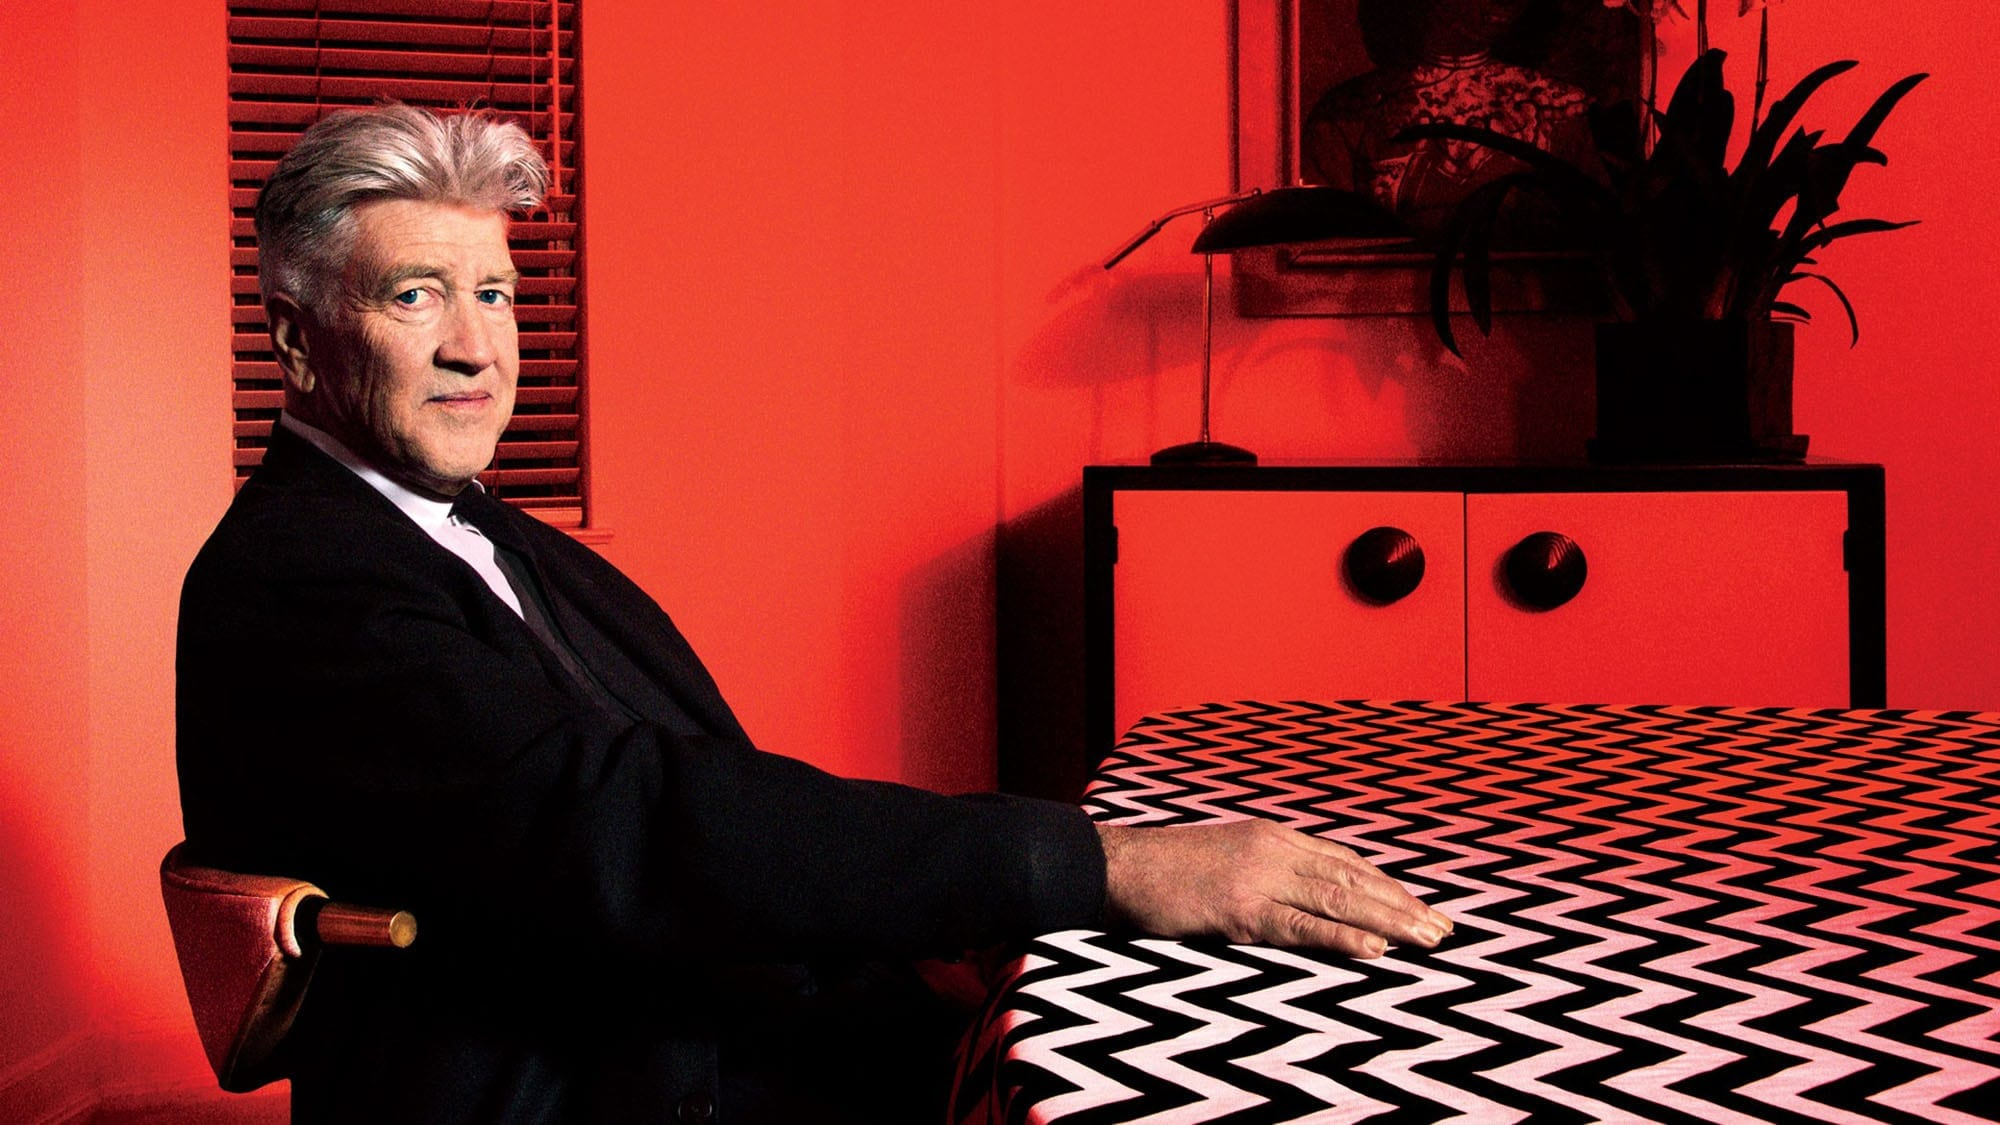 To celebrate the wit and wisdom from the genius brains behind 'Twin Peaks', 'Mulholland Drive', 'Blue Velvet', and 'Wild at Heart', here are David Lynch's ten most inspiring pearls of wisdom.